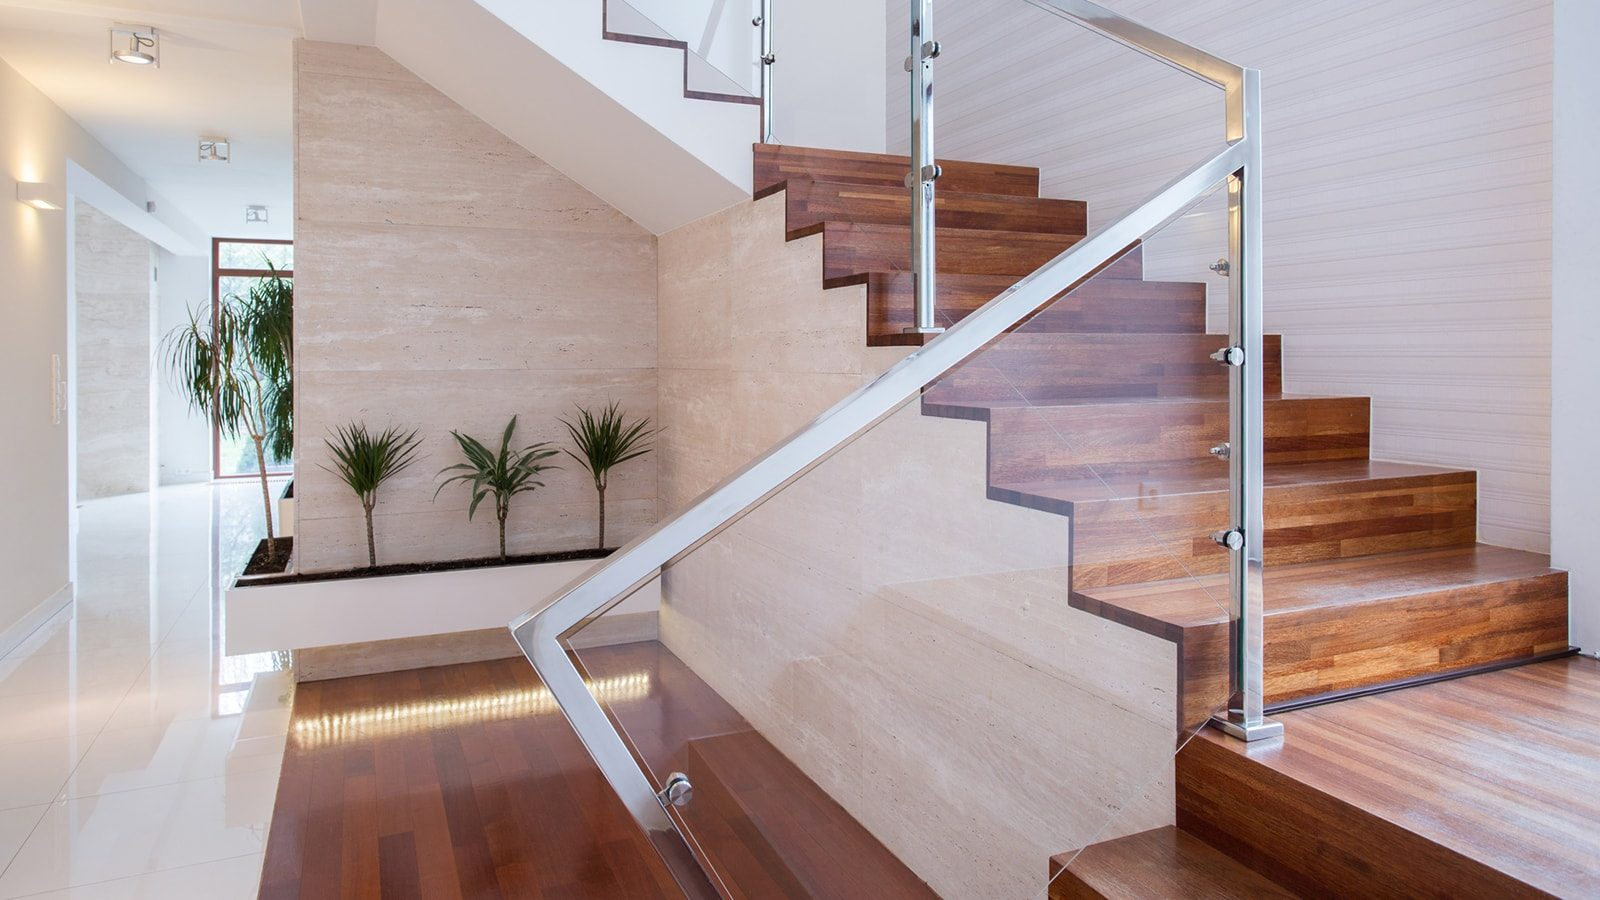 10 Beautiful Staircase Ideas That Will Instantly Upgrade Your Home